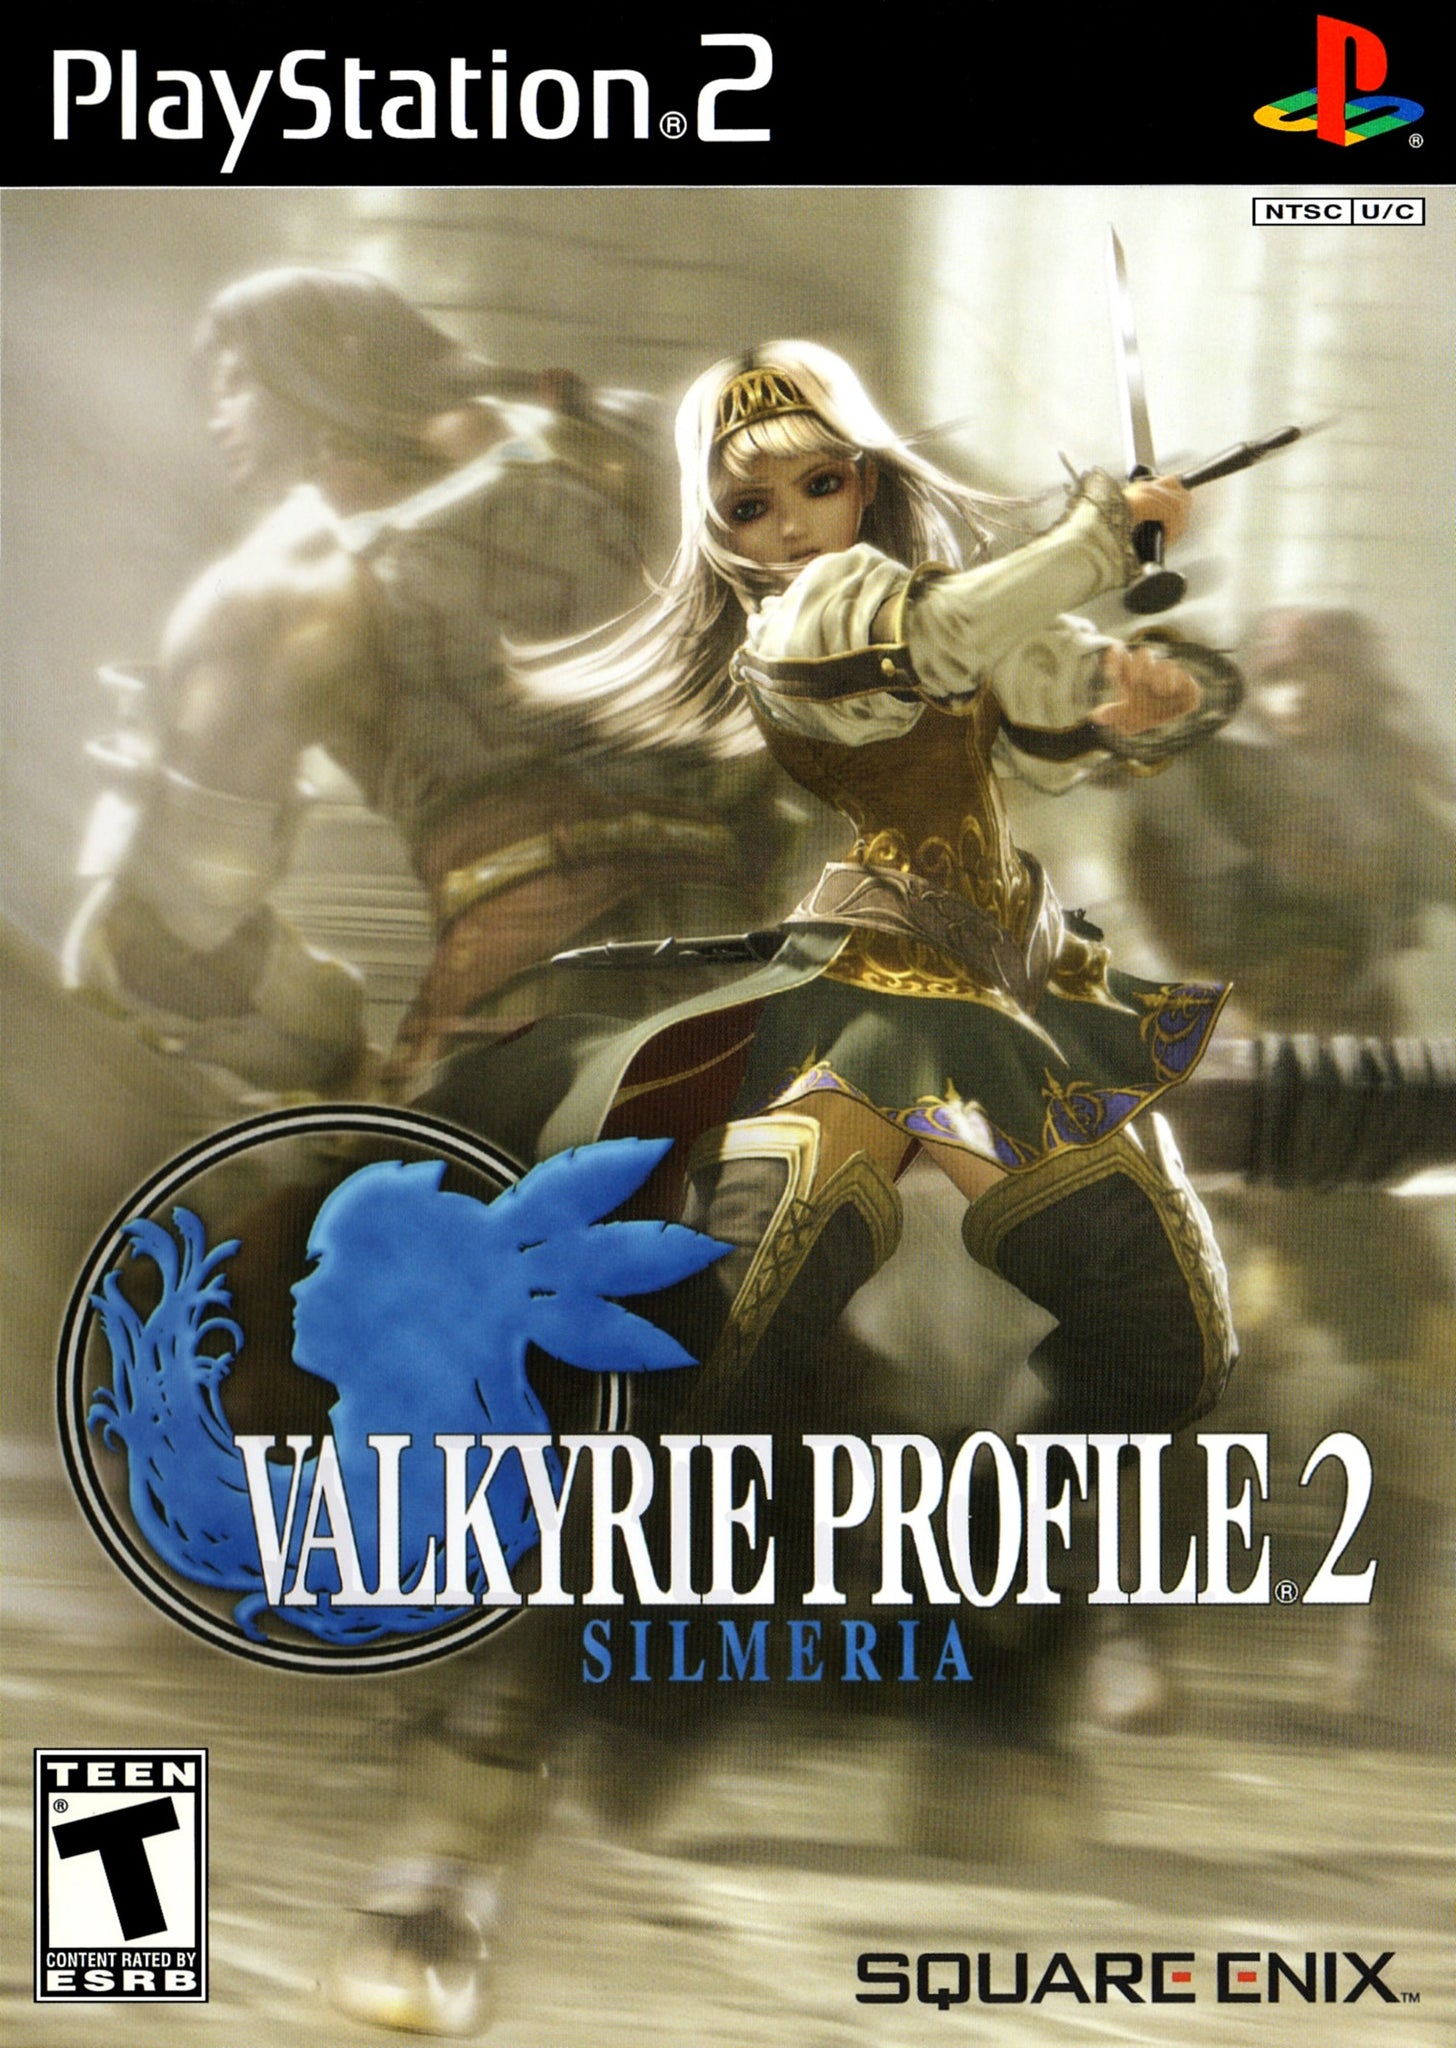 Valkyrie Profile 2: Silmeria - PlayStation 2 (PS2) Game